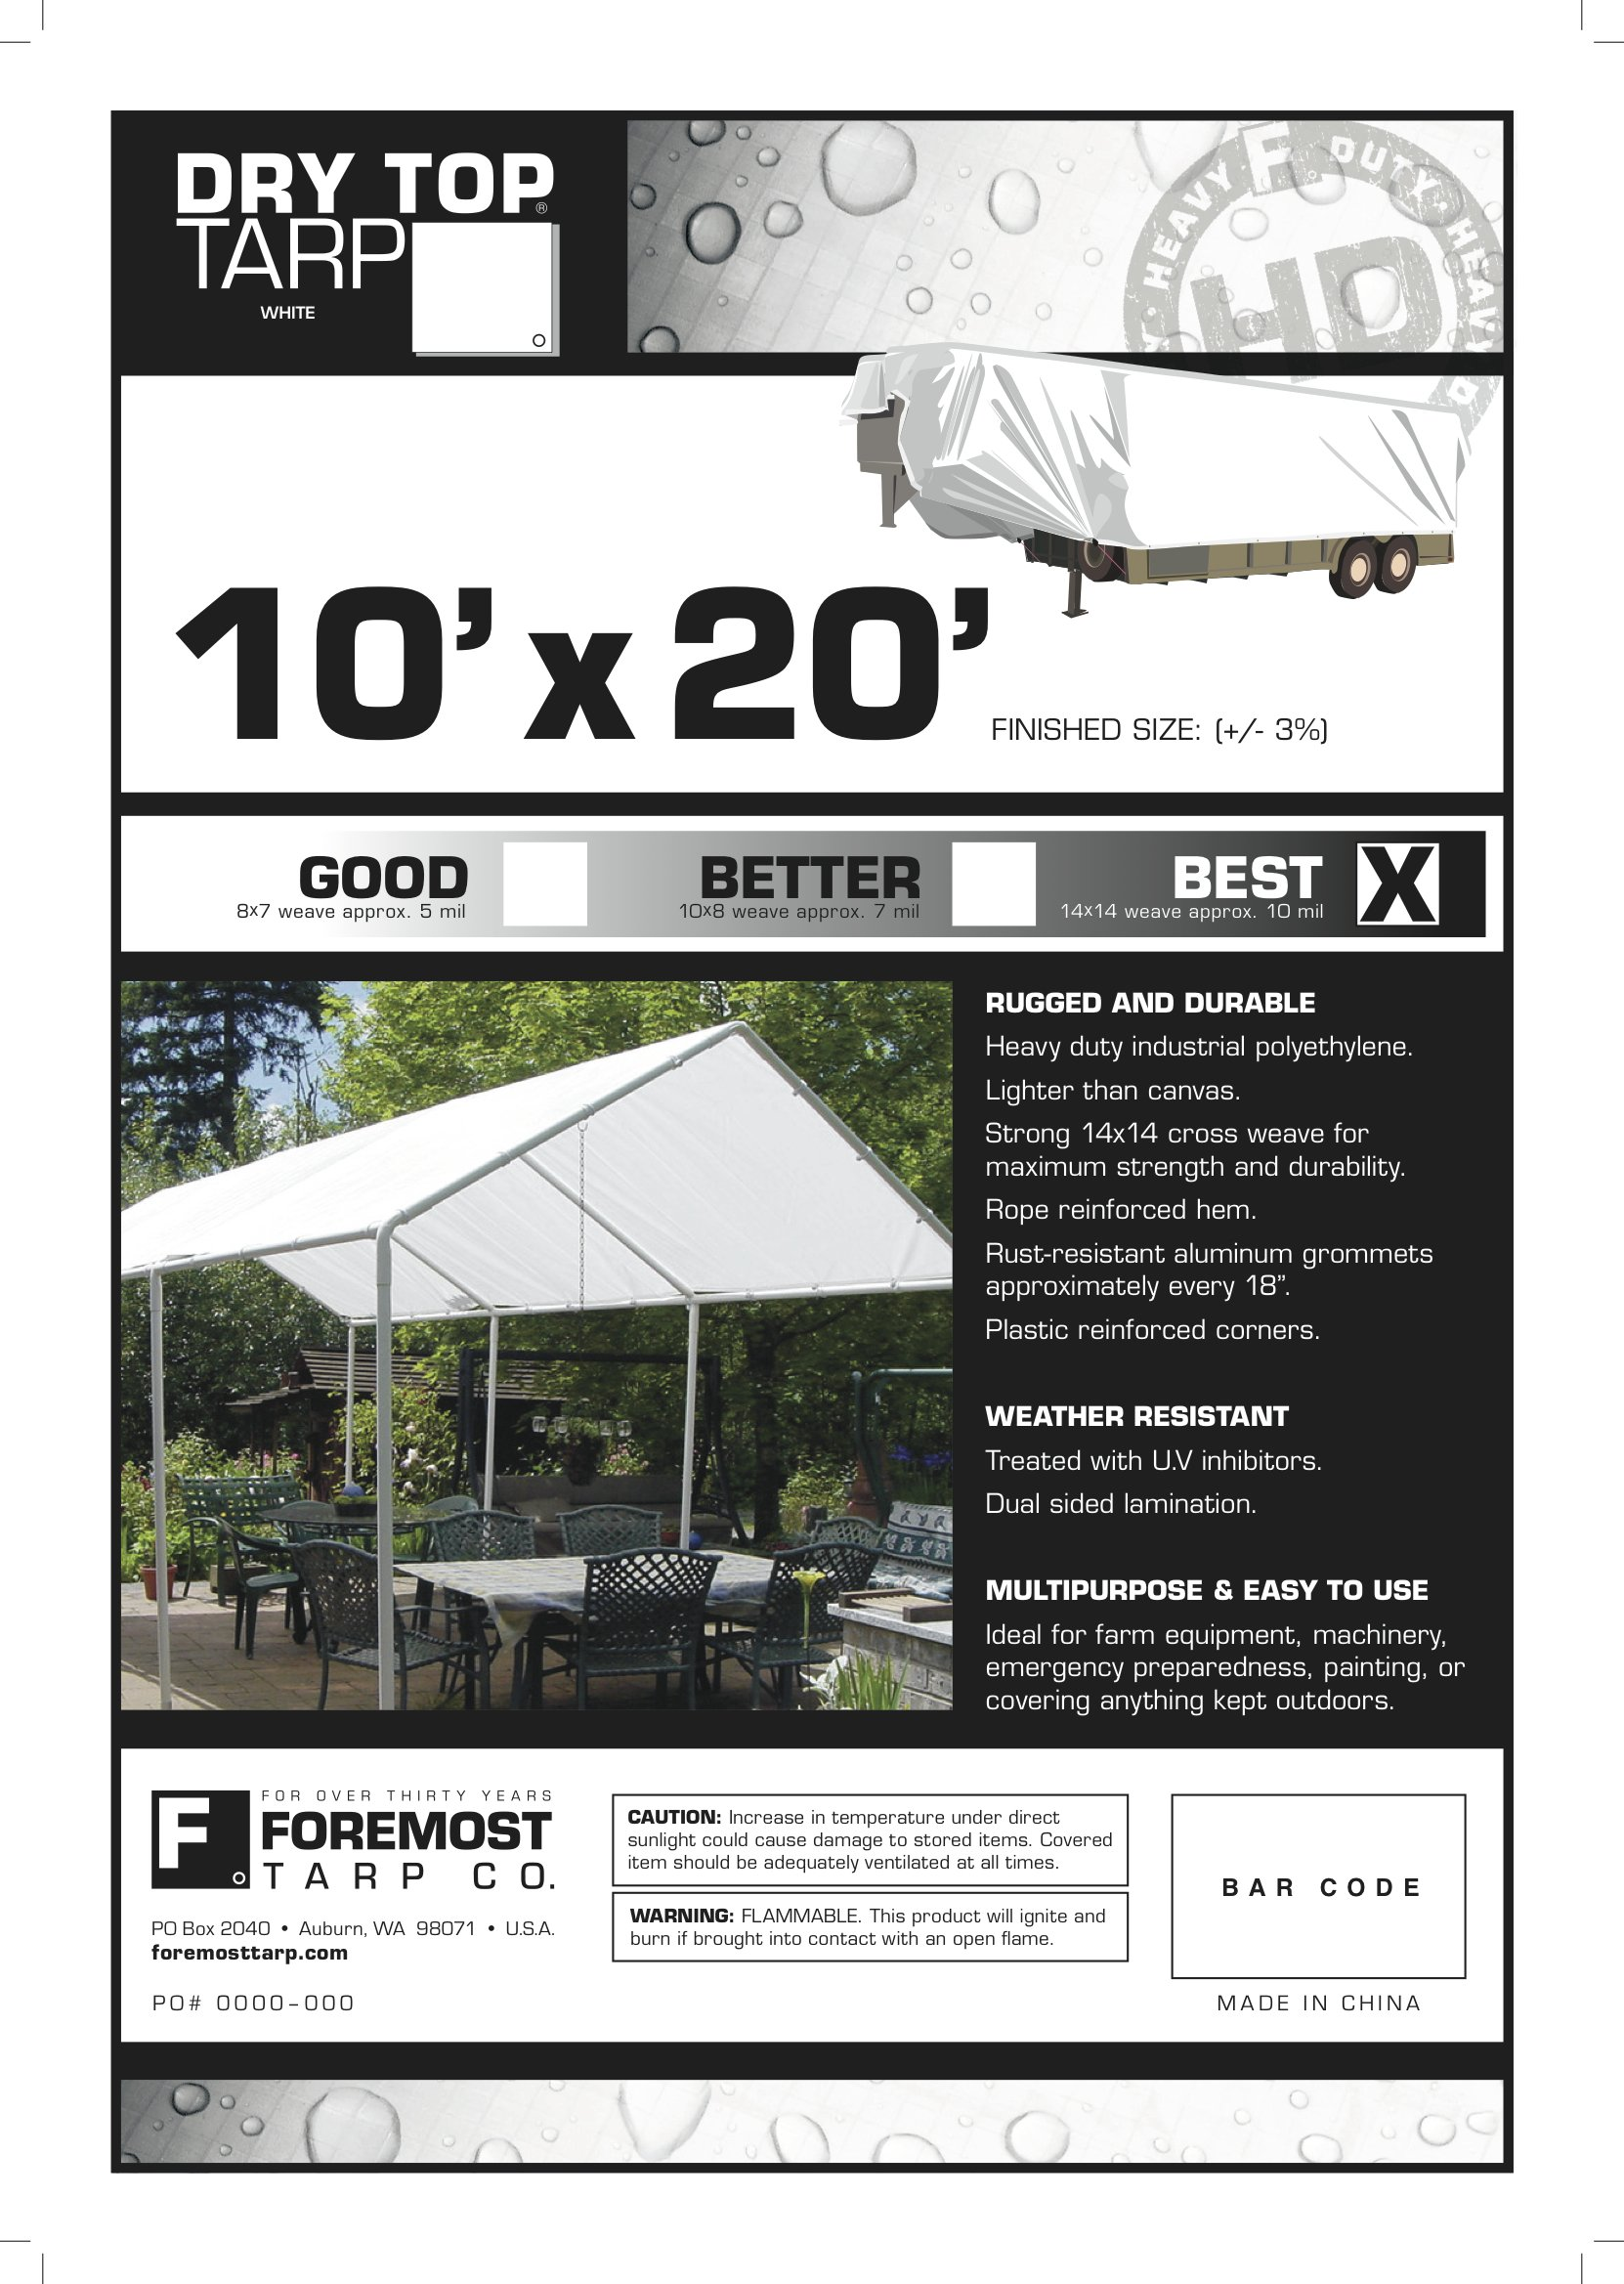 10' x 20' Dry Top Heavy Duty White Full Size 10-mil Poly Tarp item #310207